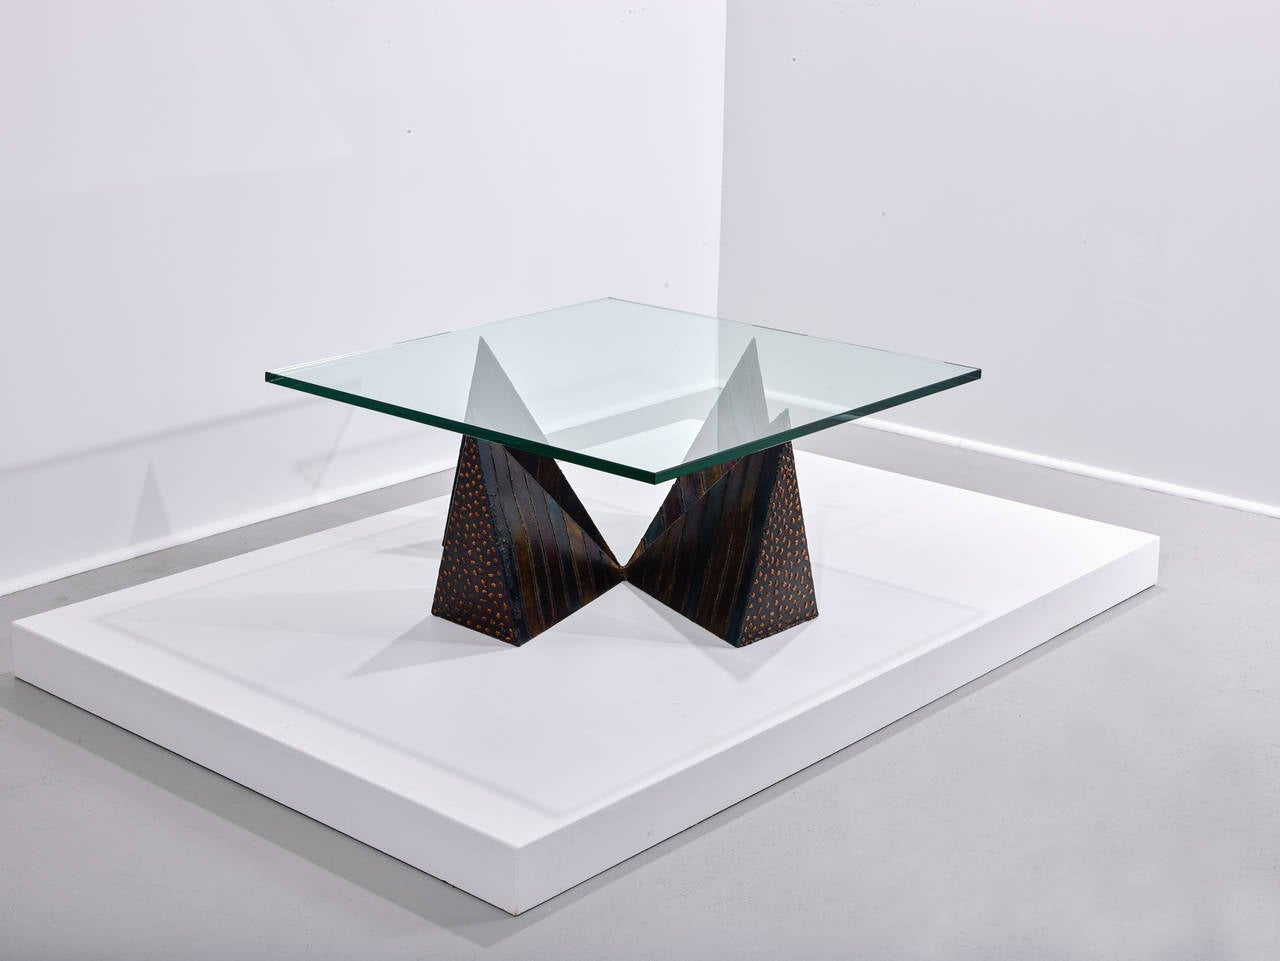 Paul Evans Coffee Table with Welded Pyramid Base  Paul Evans Studio for Directional Model PE 14-42 documented model USA circa 1973  All original and unrestored welded and enameled steel, bronze and glass.  High colored and deep weldings  Welded